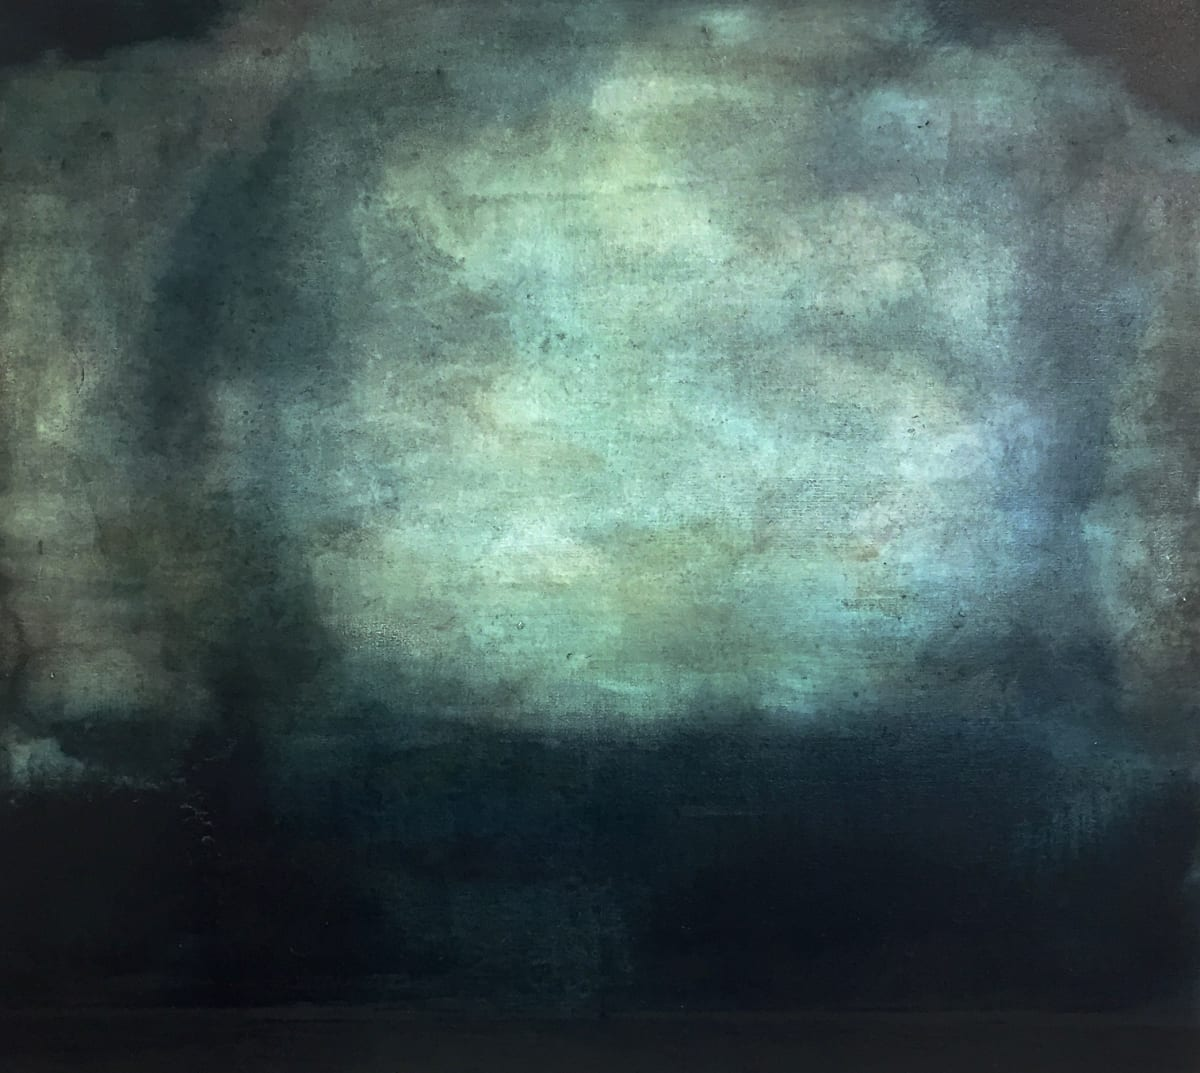 David Konigsberg, Night Cumulus, 2019